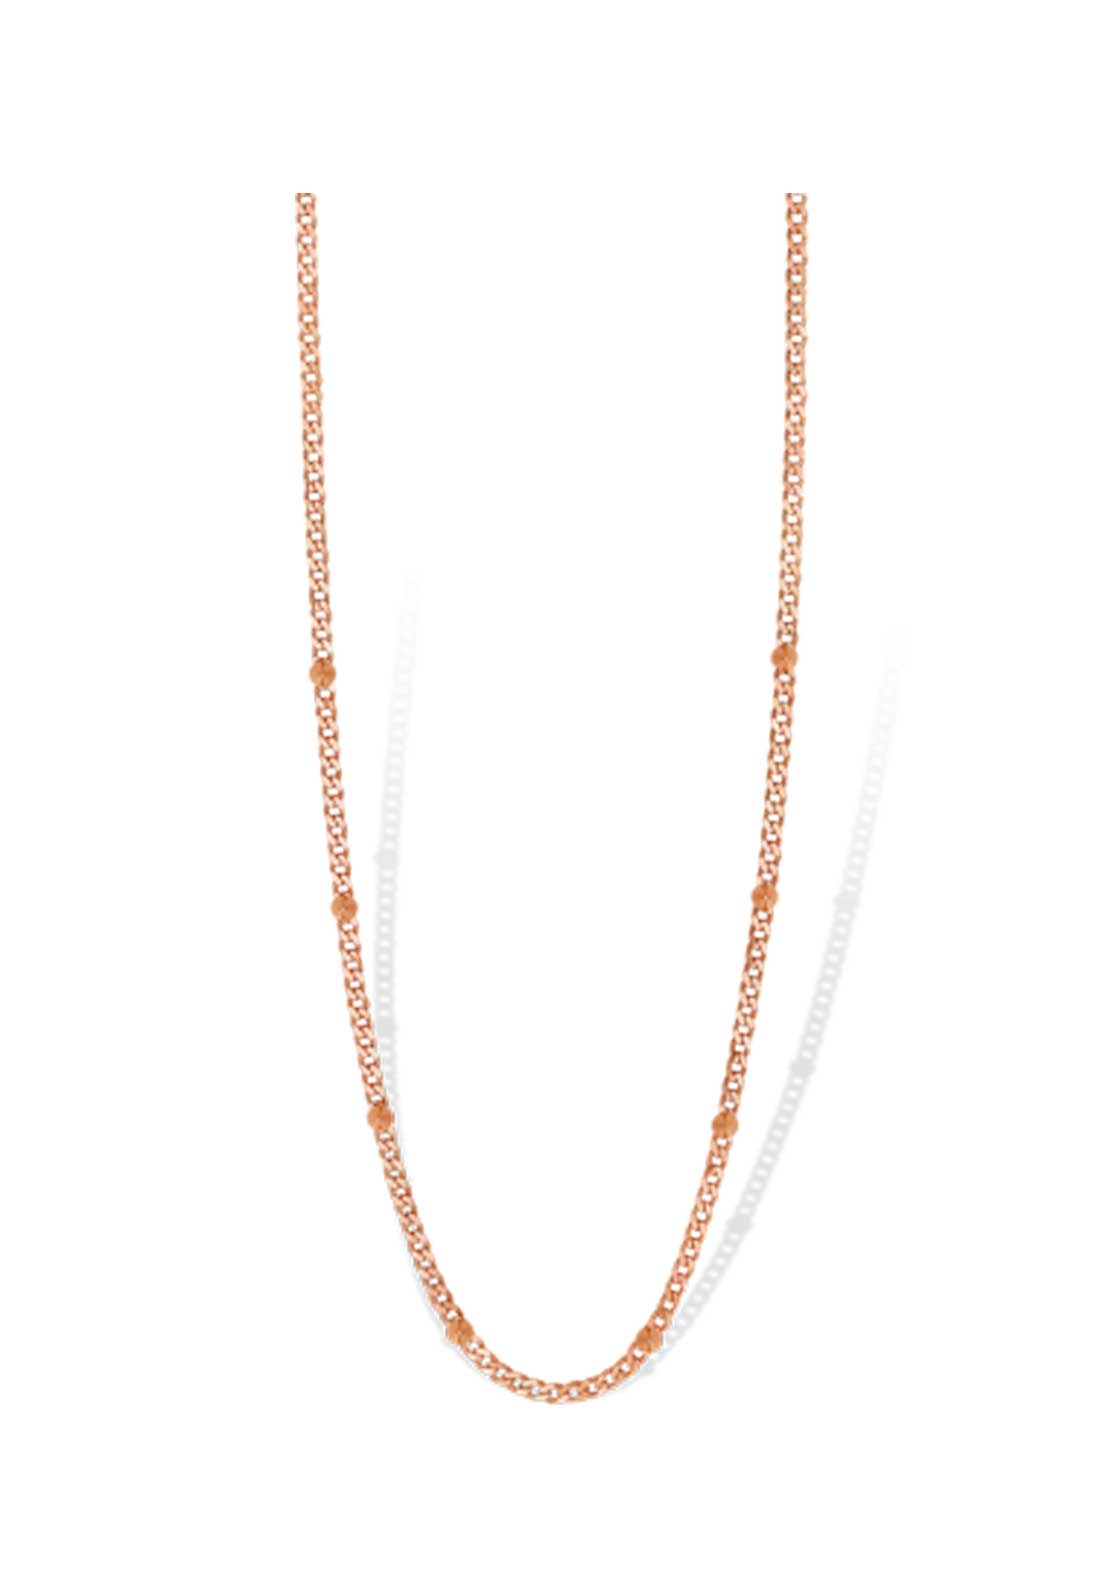 Mi Moneda Spike Necklace, Rose Gold